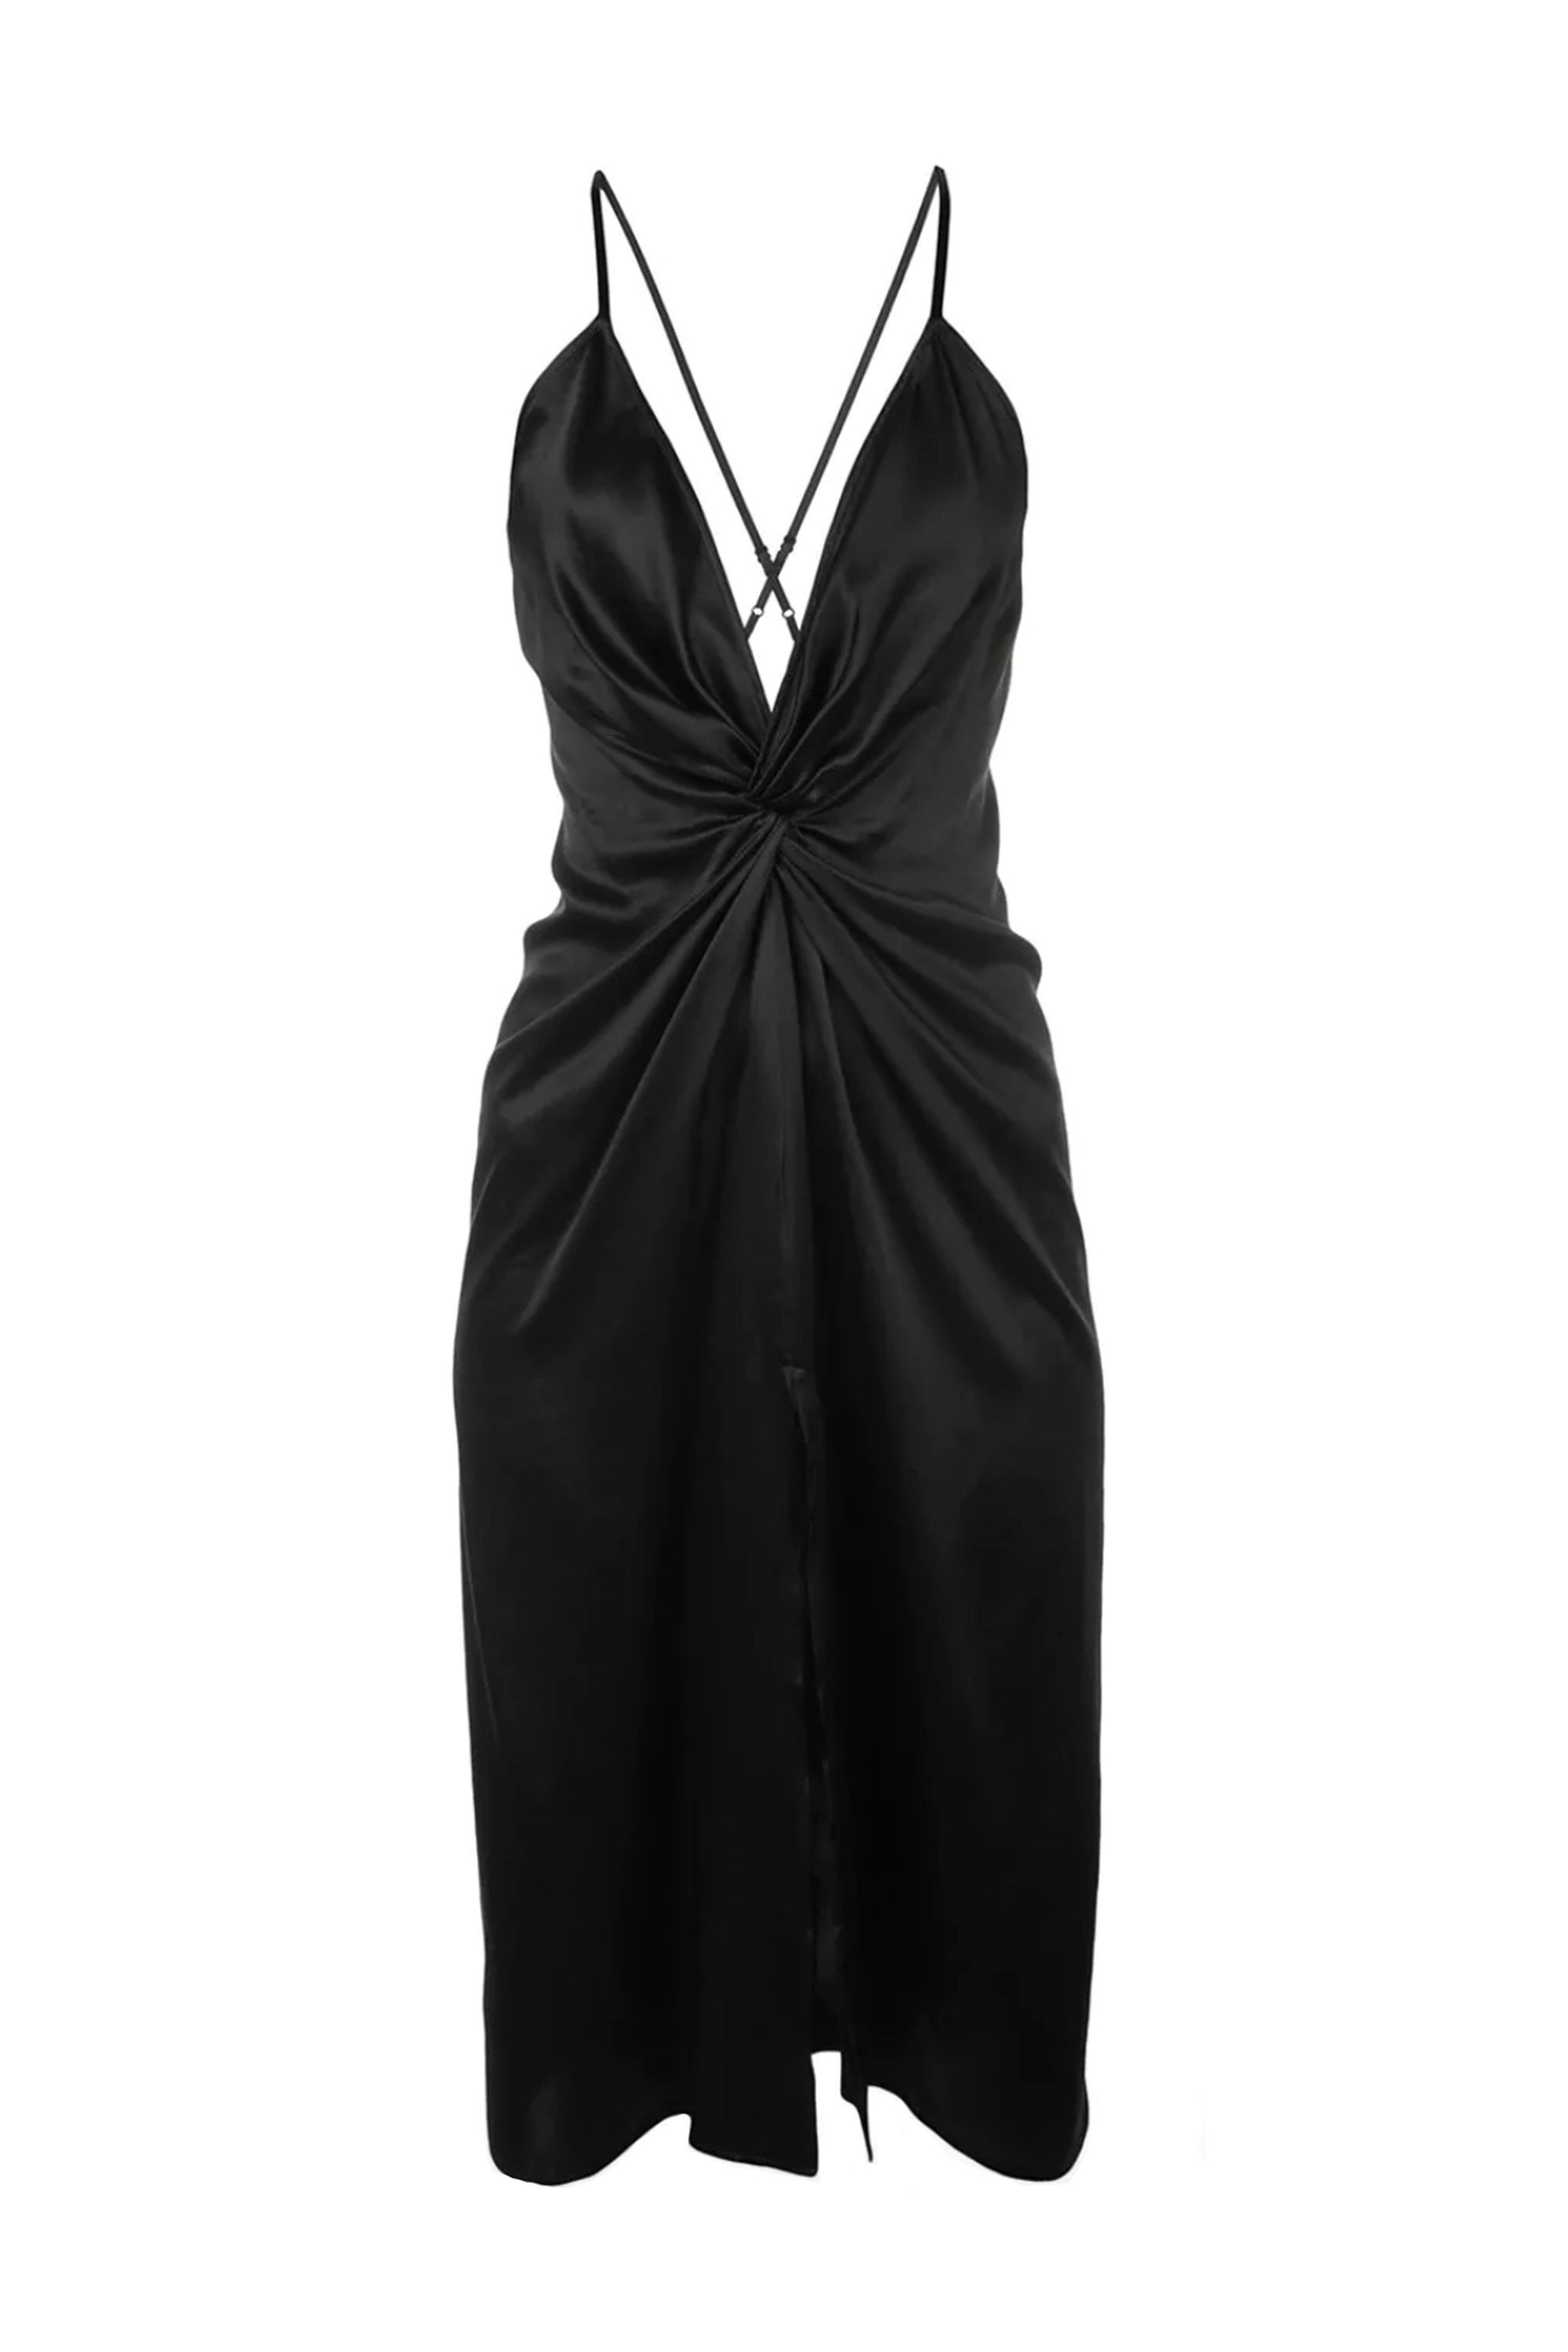 Robertson Satin Dress Reformation farfetch.com $139.00 SHOP NOW A slinky LBD ideal for the singles table.